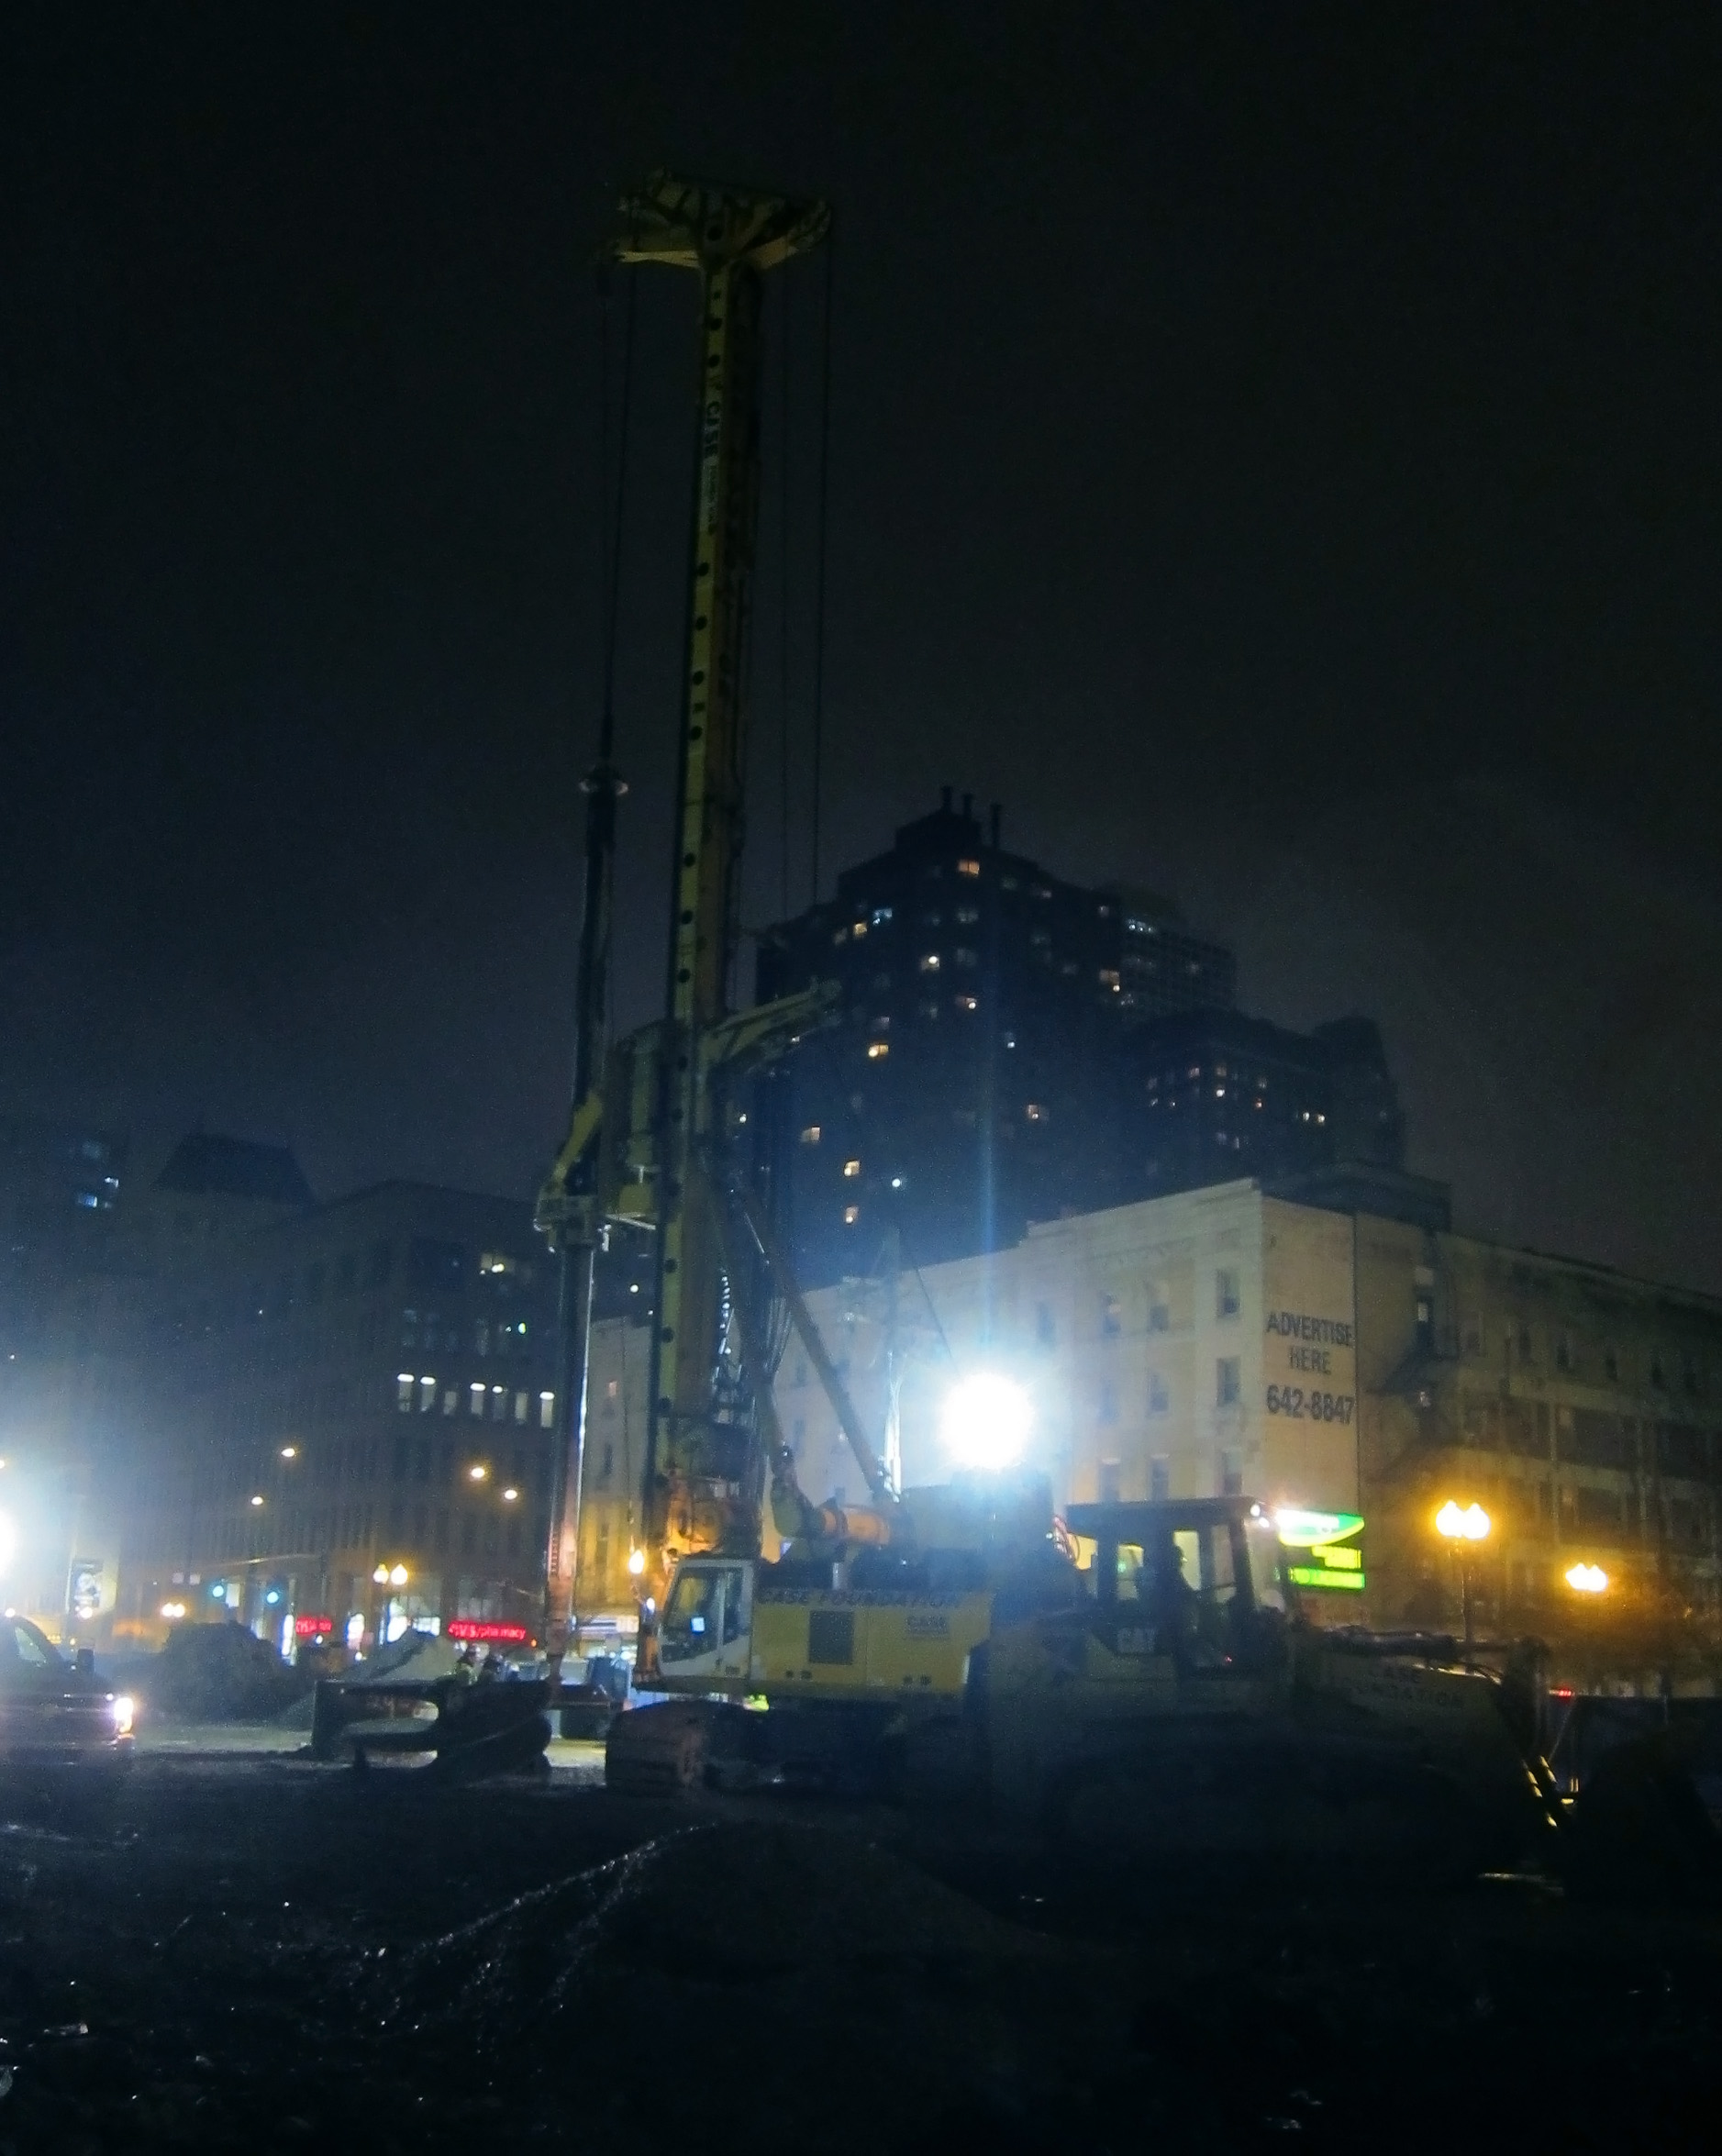 Night-time construction at Clark and Division, Chicago